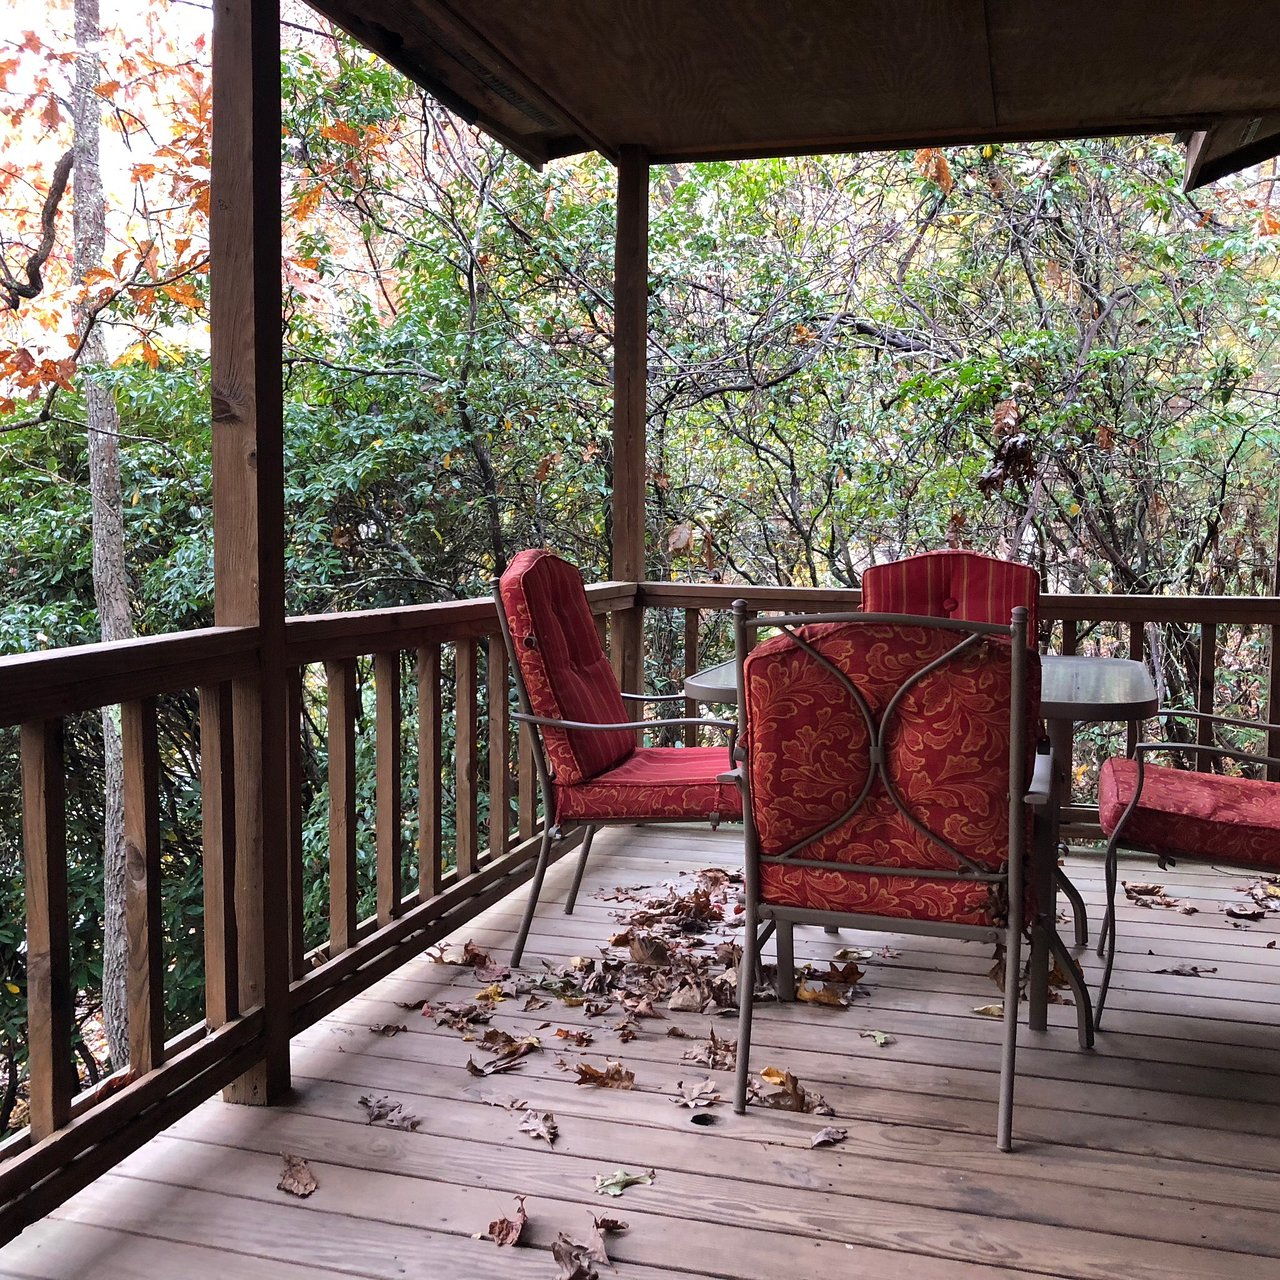 mountain springs cabins - prices & campground reviews (candler, nc